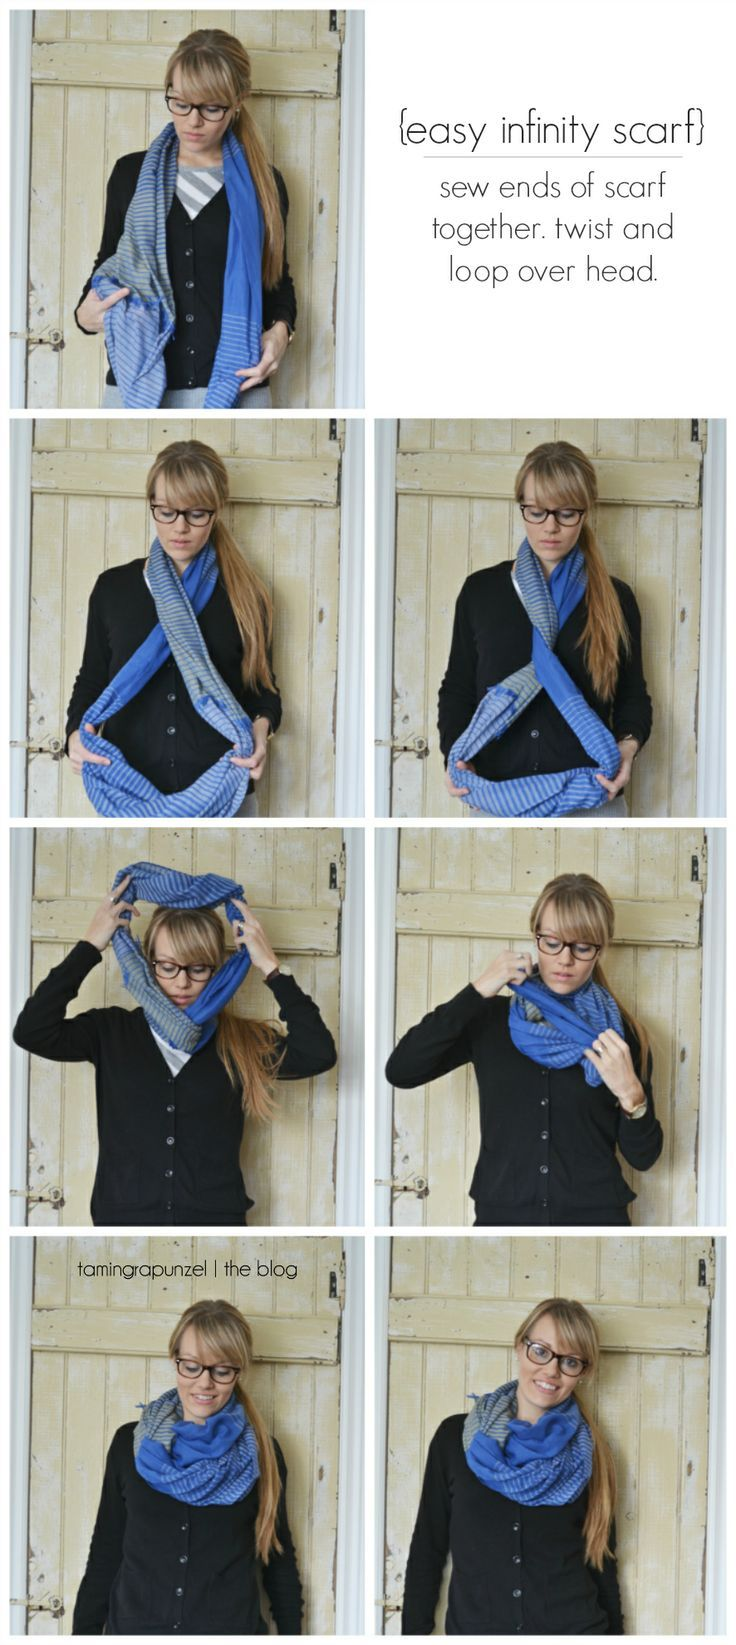 to wear - How to infinity wear scarf pinterest video